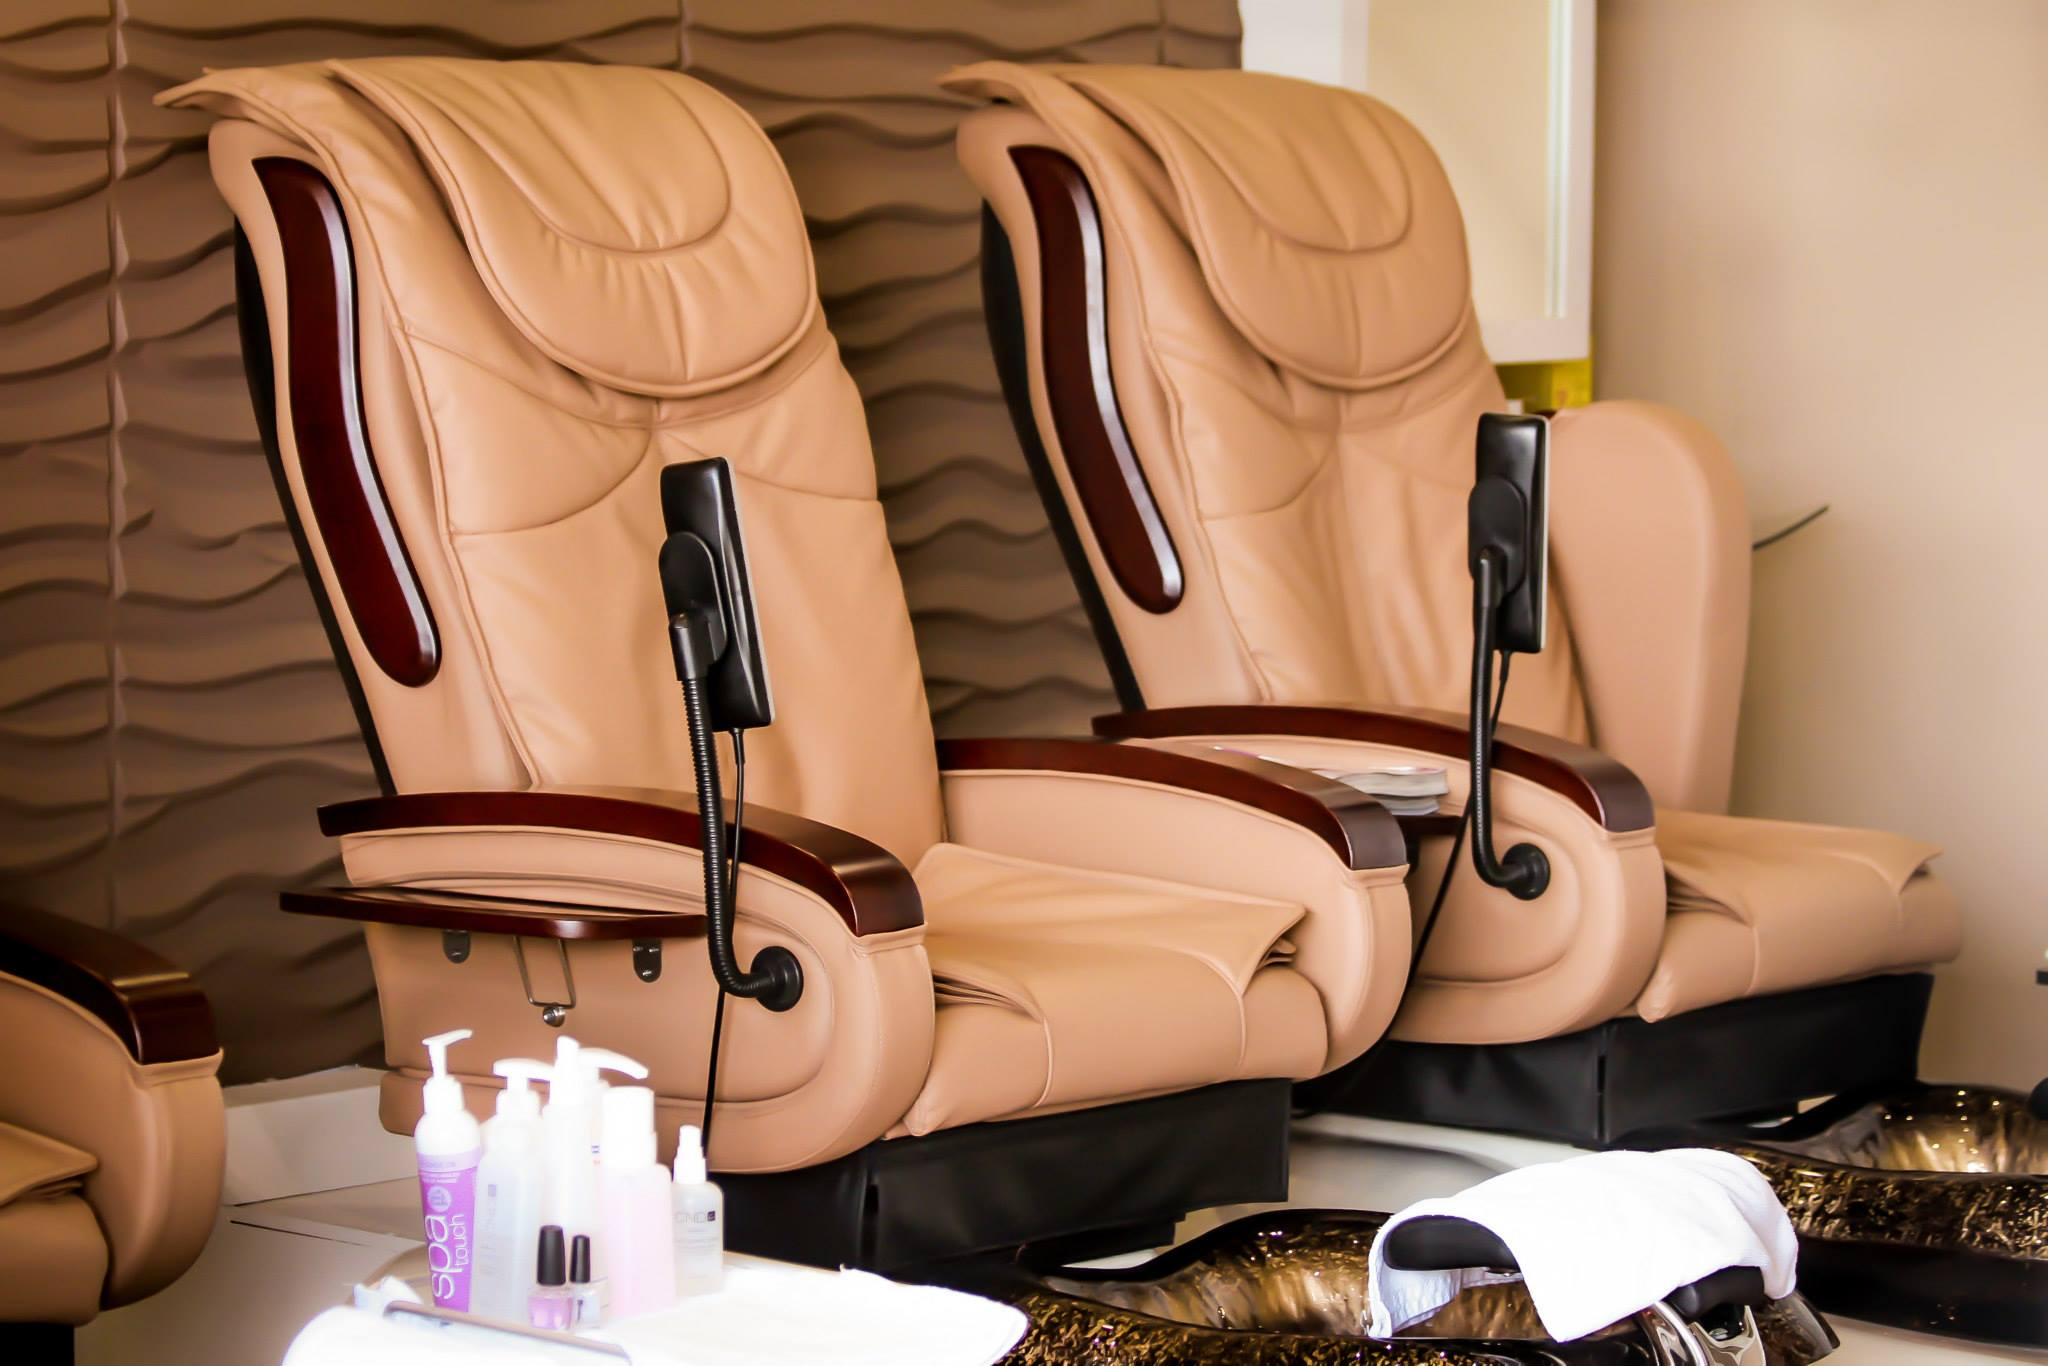 Spring Mist Milton Spa features luxurious state of the art pedicure chairs.